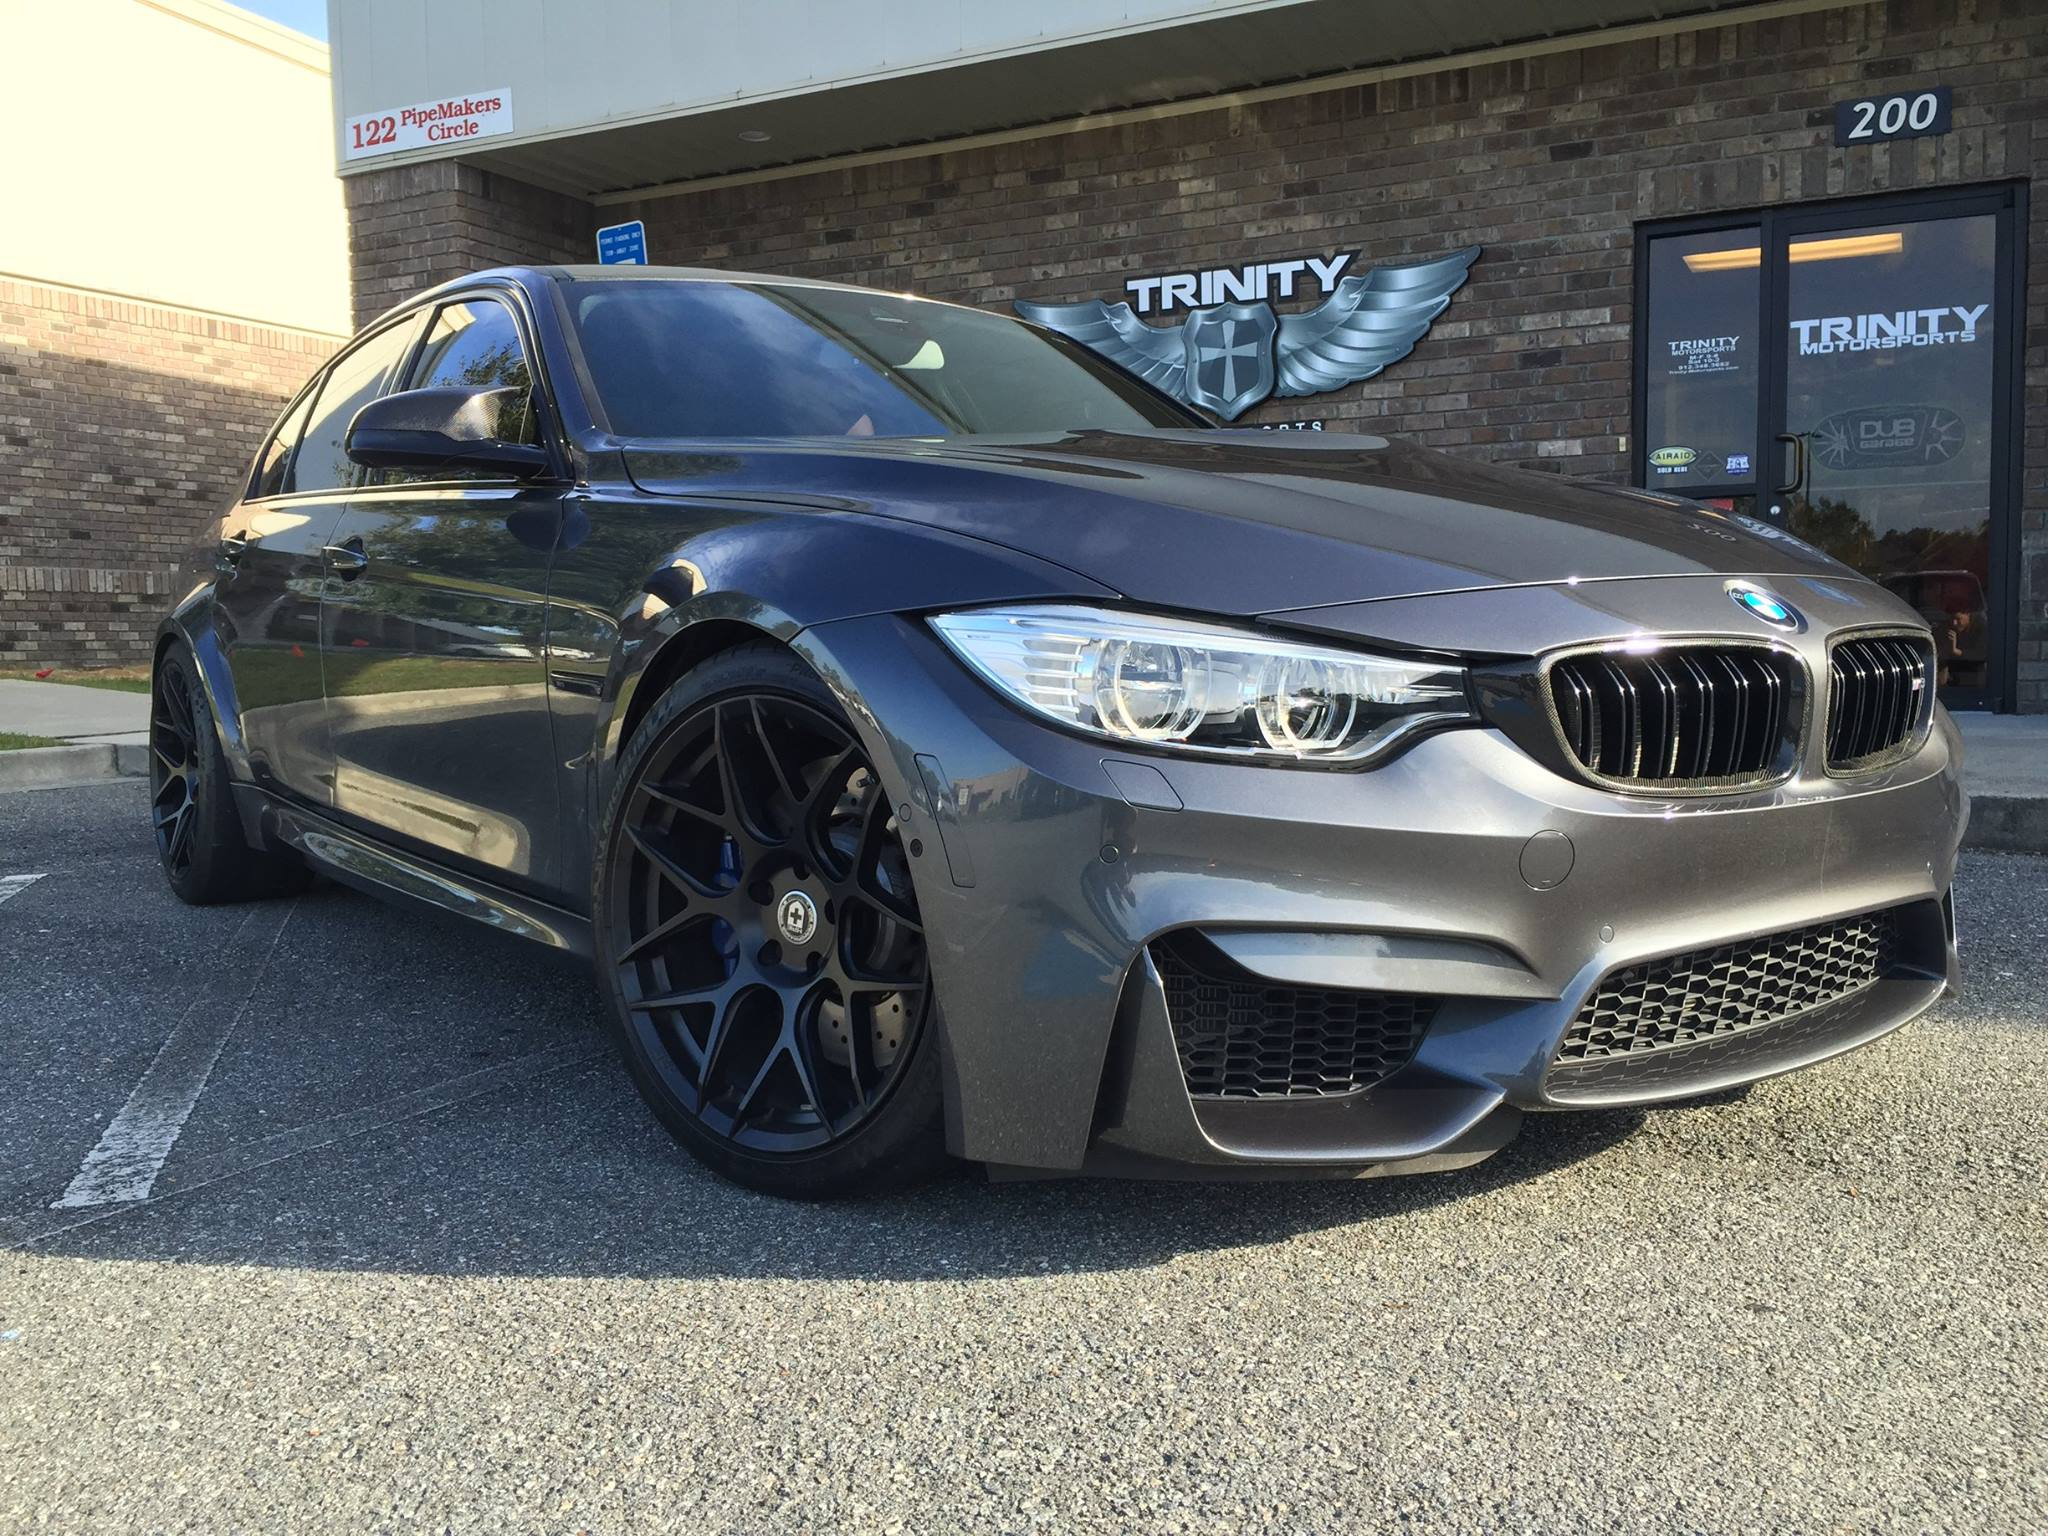 Lowered Bmw M3 On Hre Wheels Trinity Motorsports